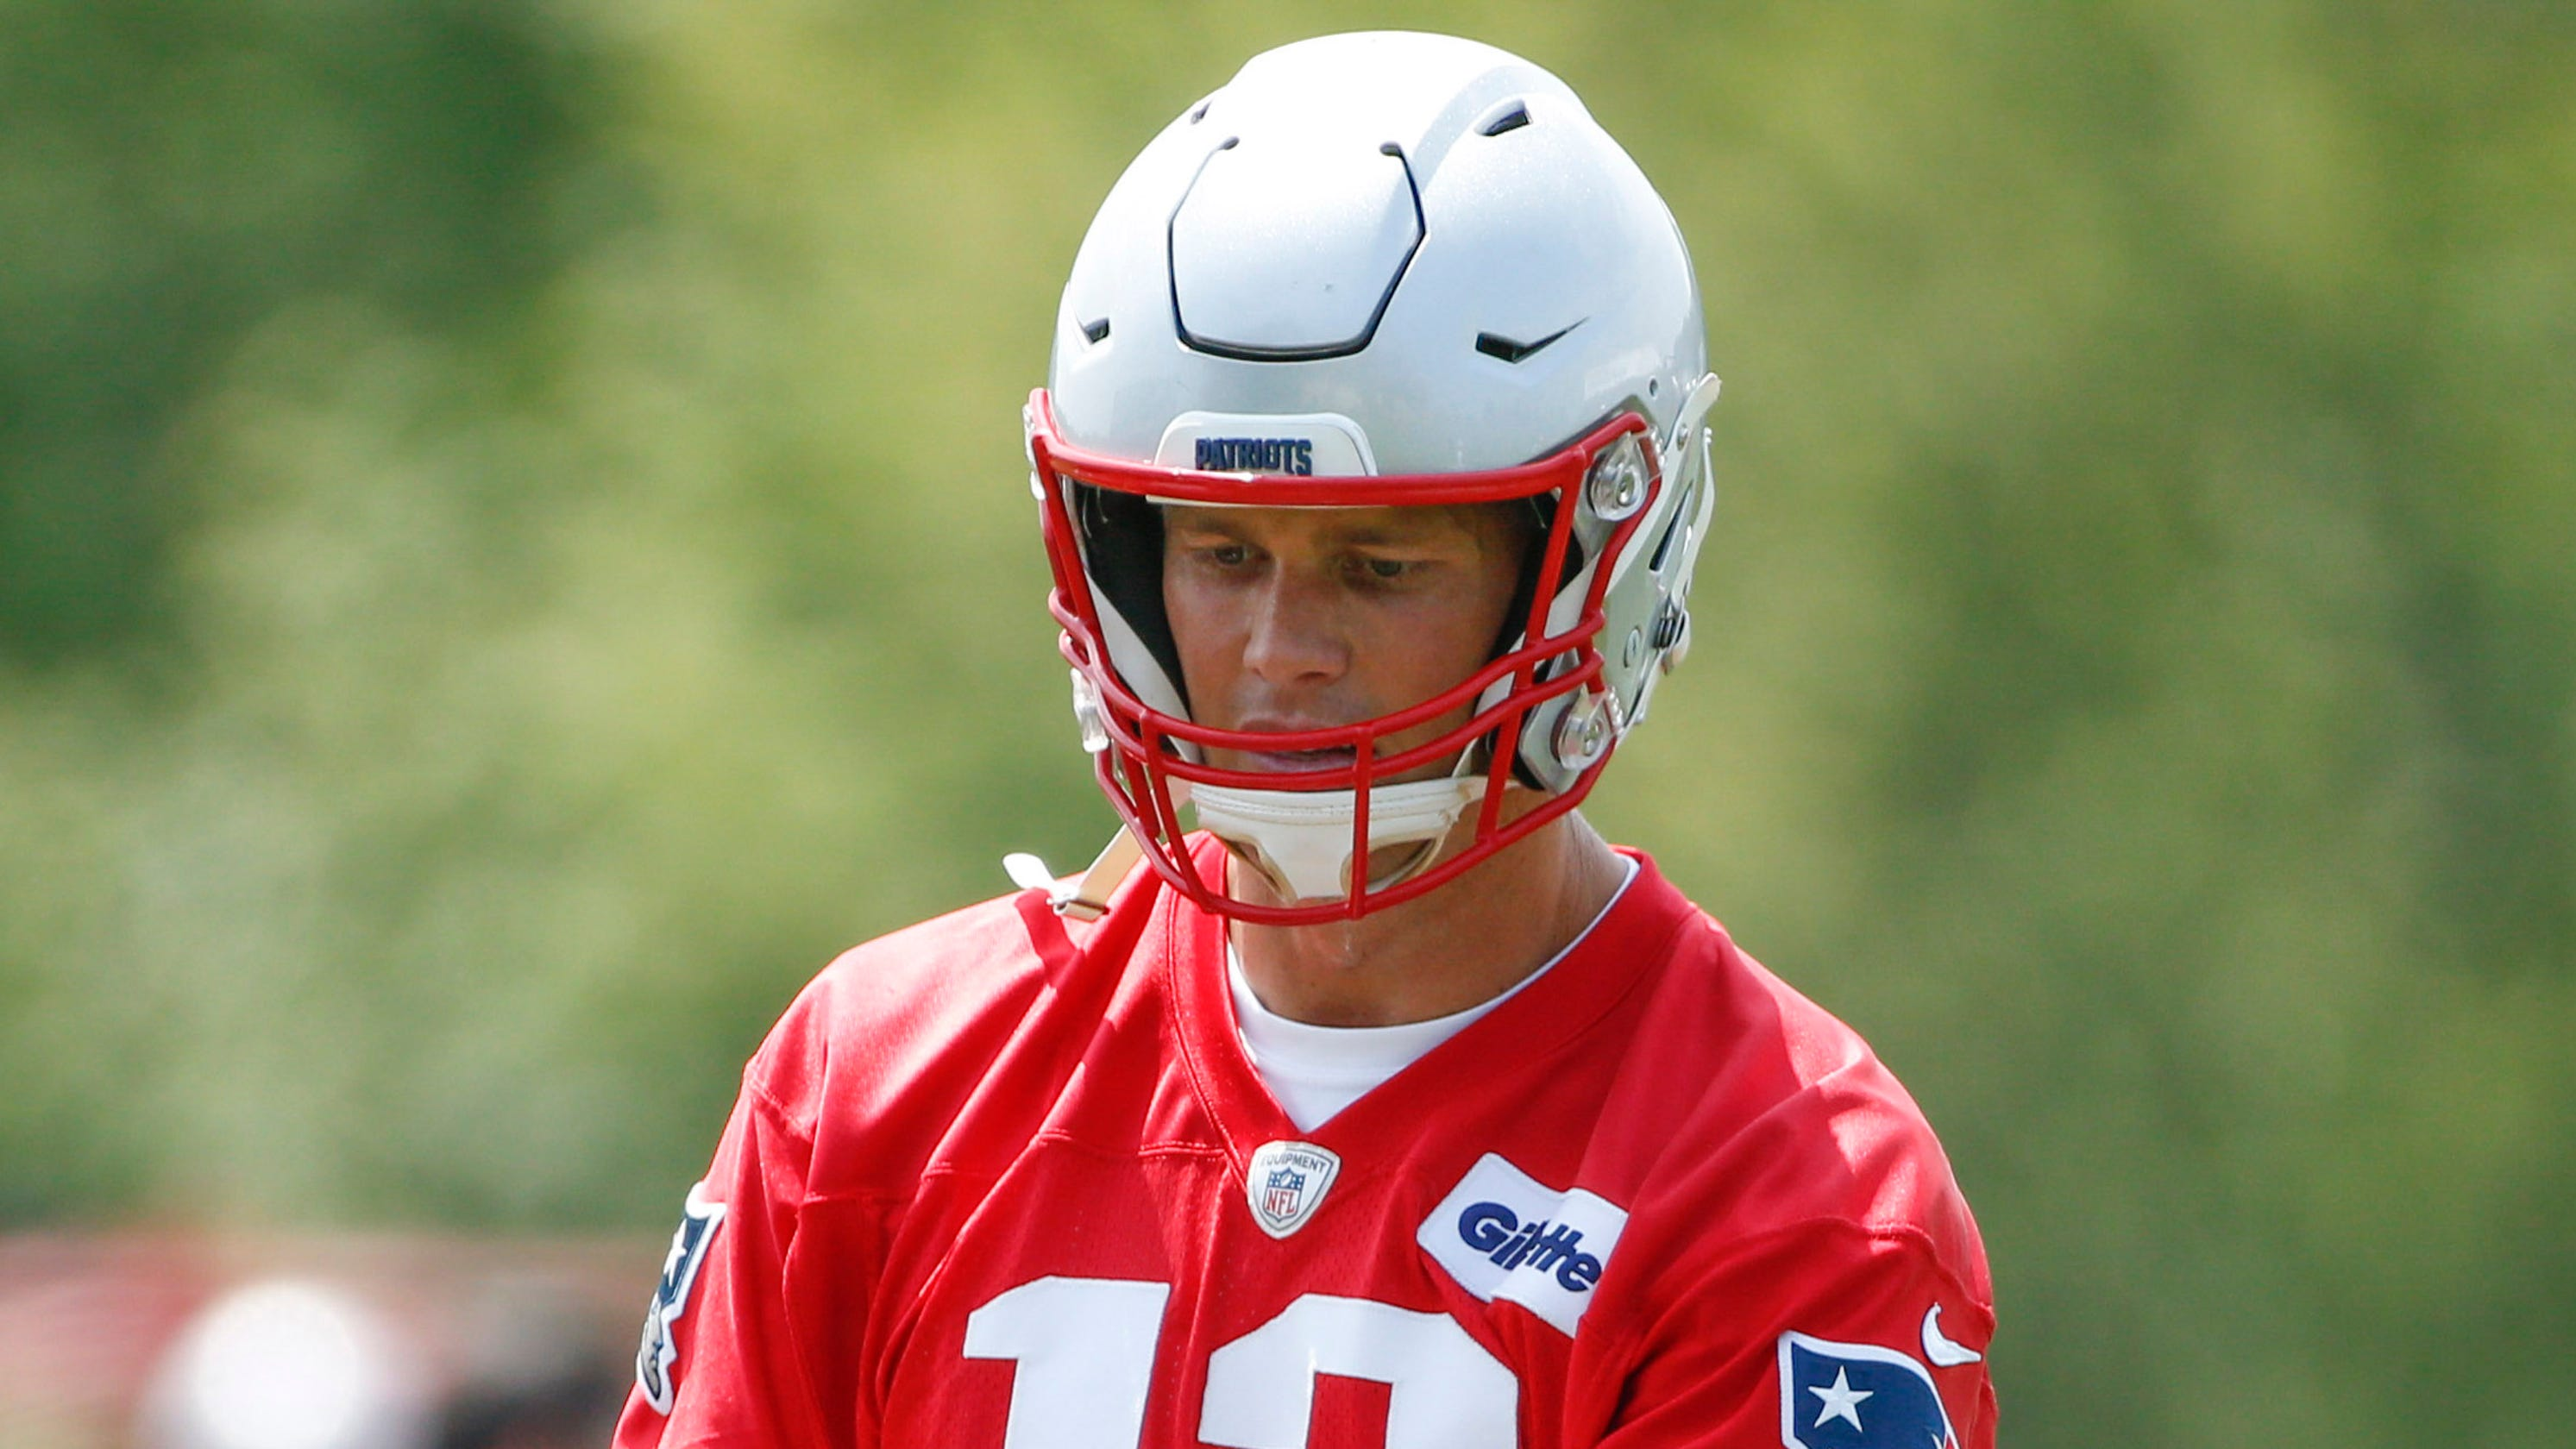 Tom Brady dealing with helmet change protested by Antonio Brown: 'I don't really have much of a choice'